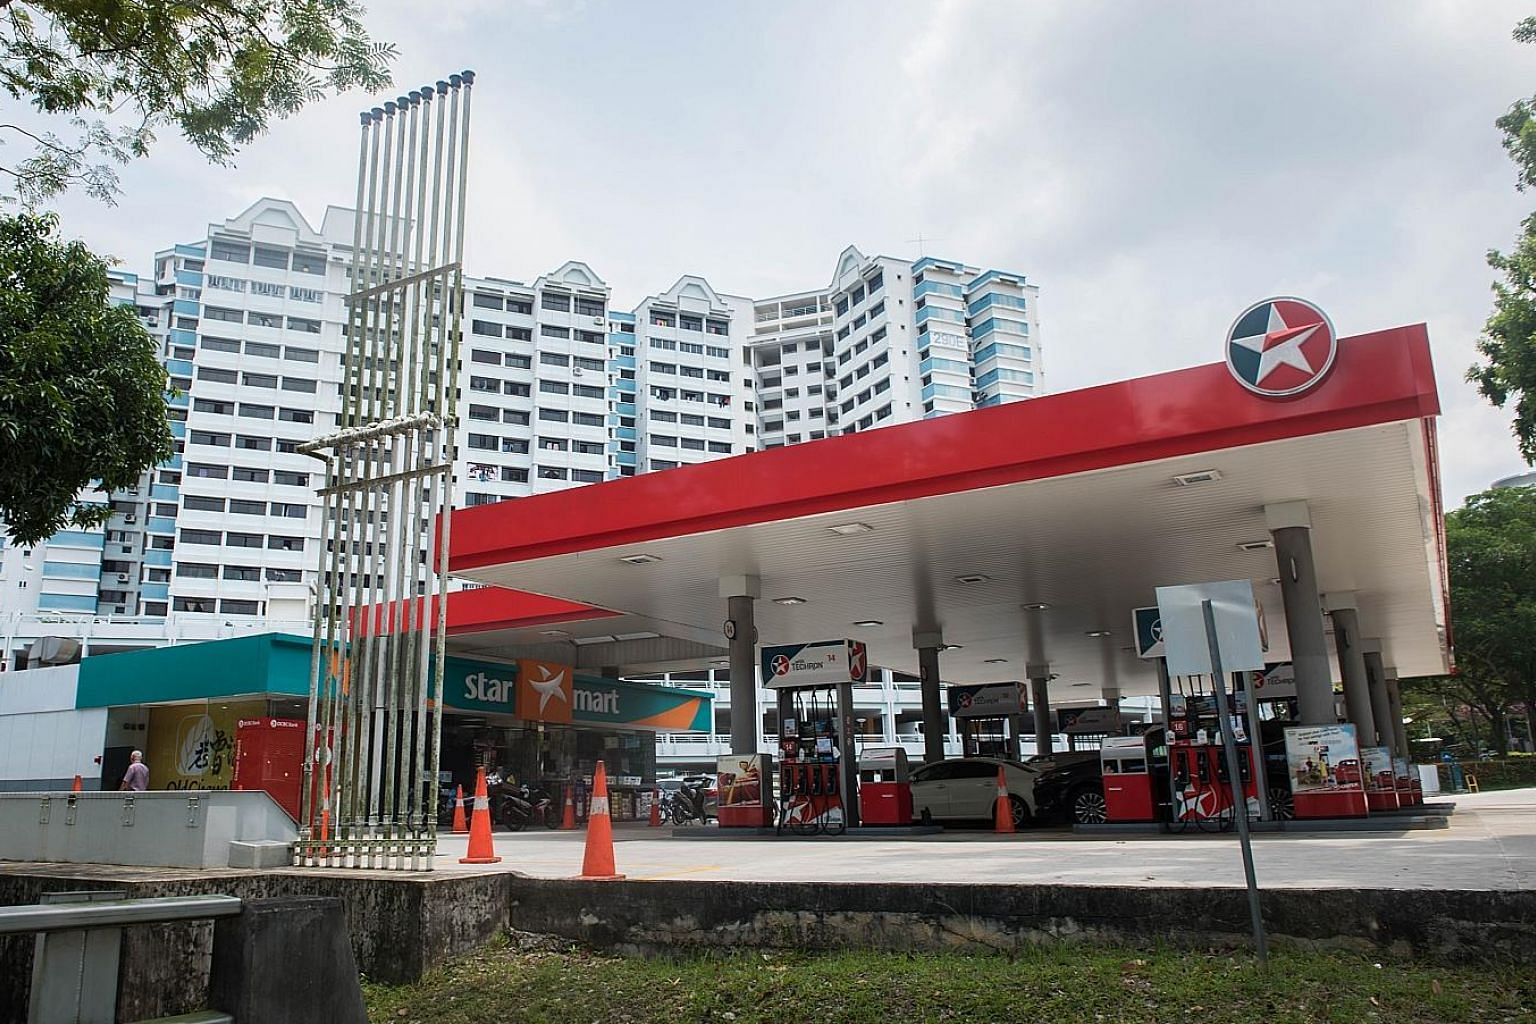 PetroChina-owned SPC looks set to take over this Bukit Batok site on a 30-year lease by the end of the year. American oil giant Chevron, which is currently operating a Caltex station here, made the second highest bid of $77.3 million.